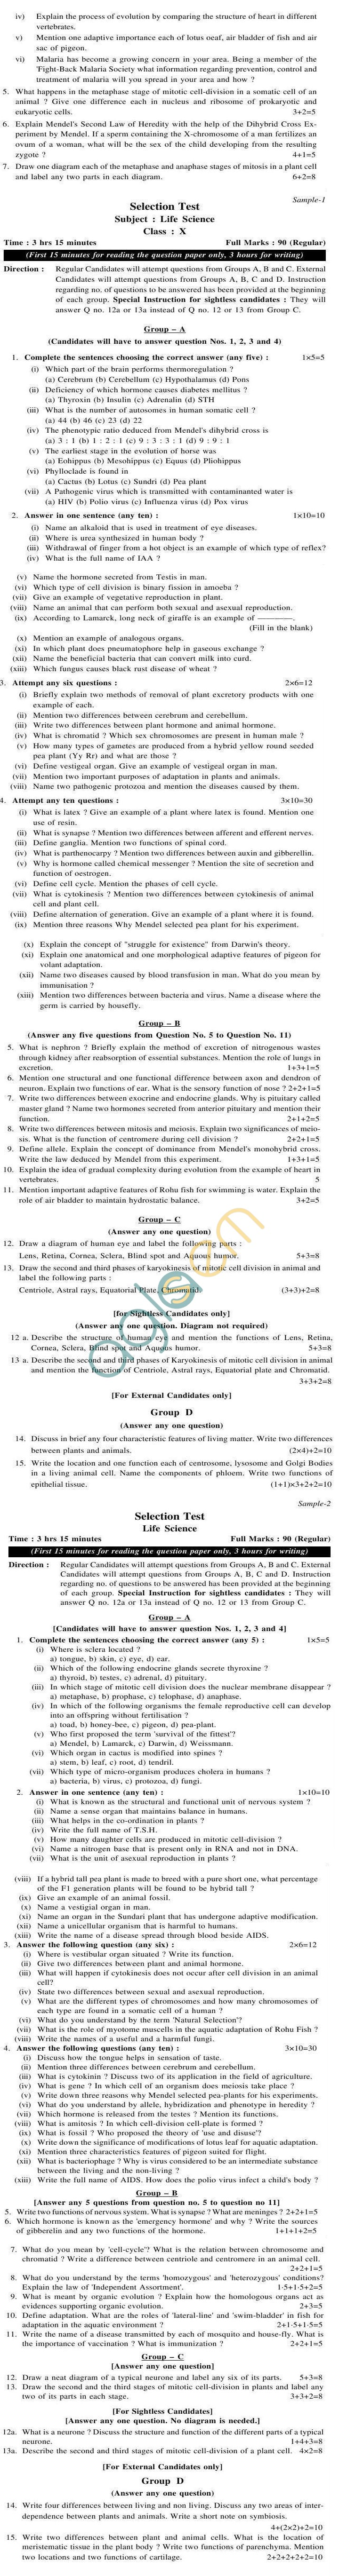 WB Board Sample Question Papers for Madhyamik Pariksha (Class 10) - Life Science